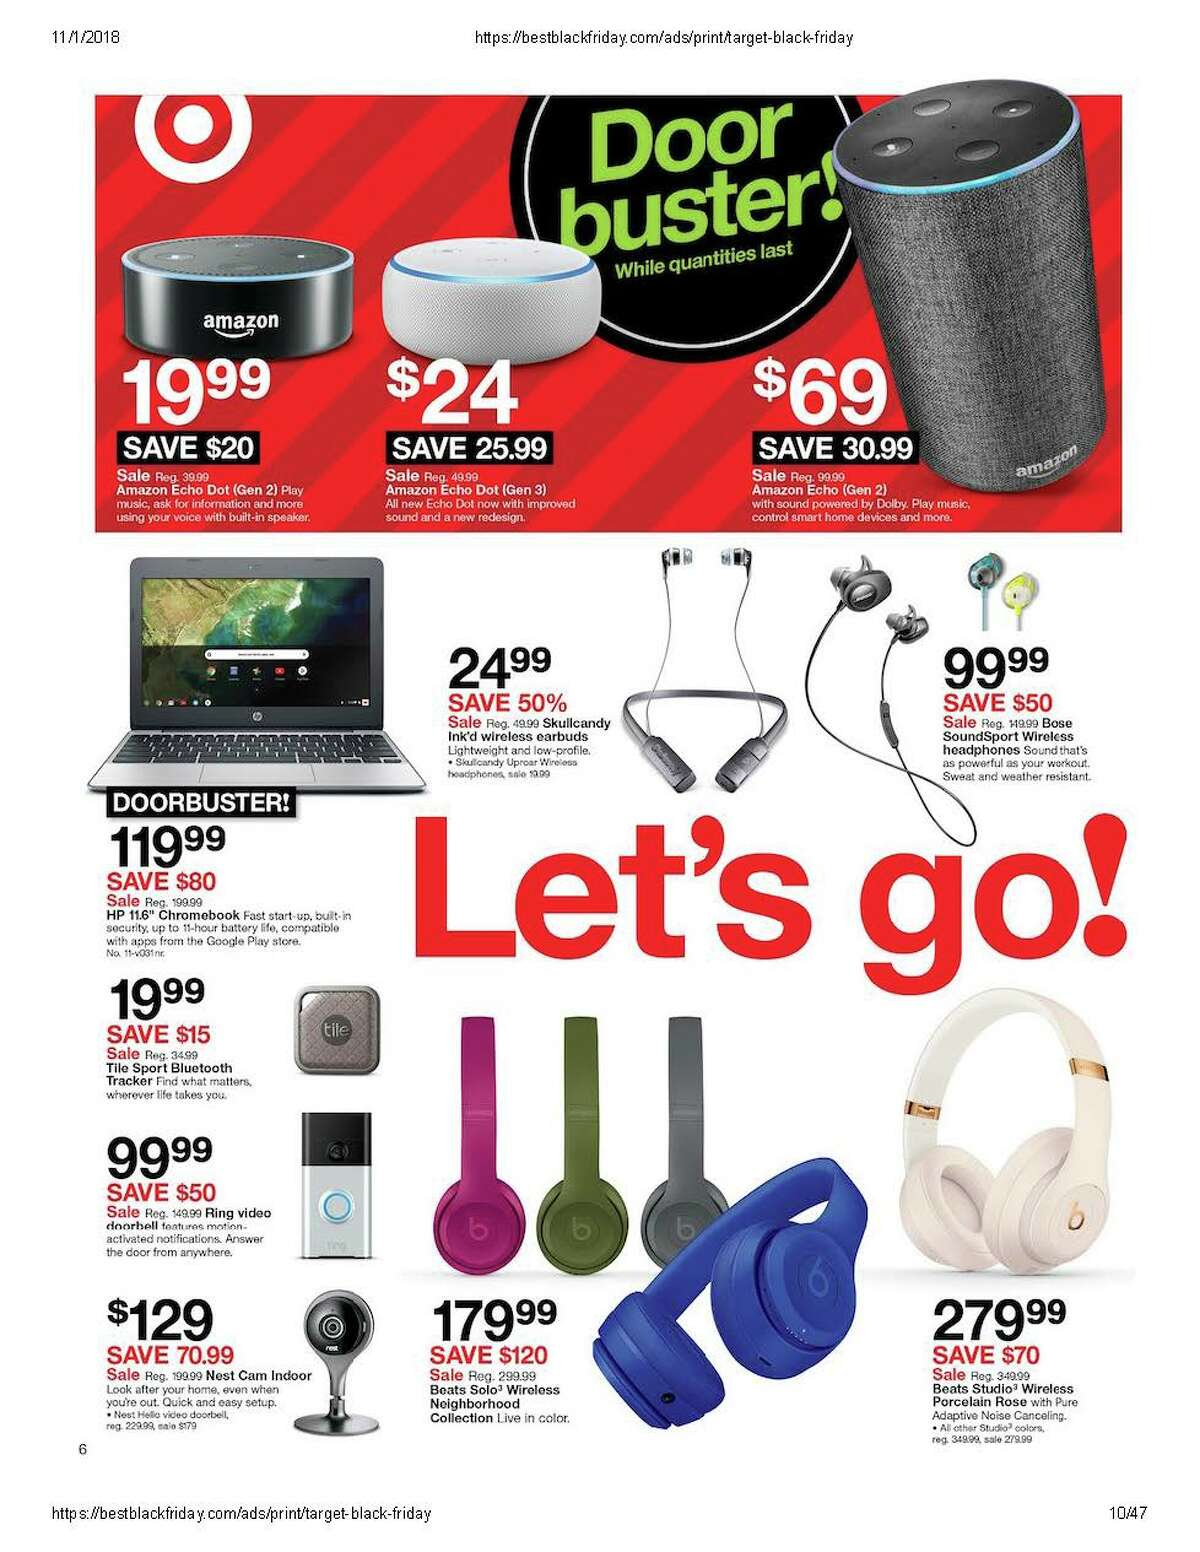 Target released its Black Friday advertisement on Thursday, Nov. 1, 2018.